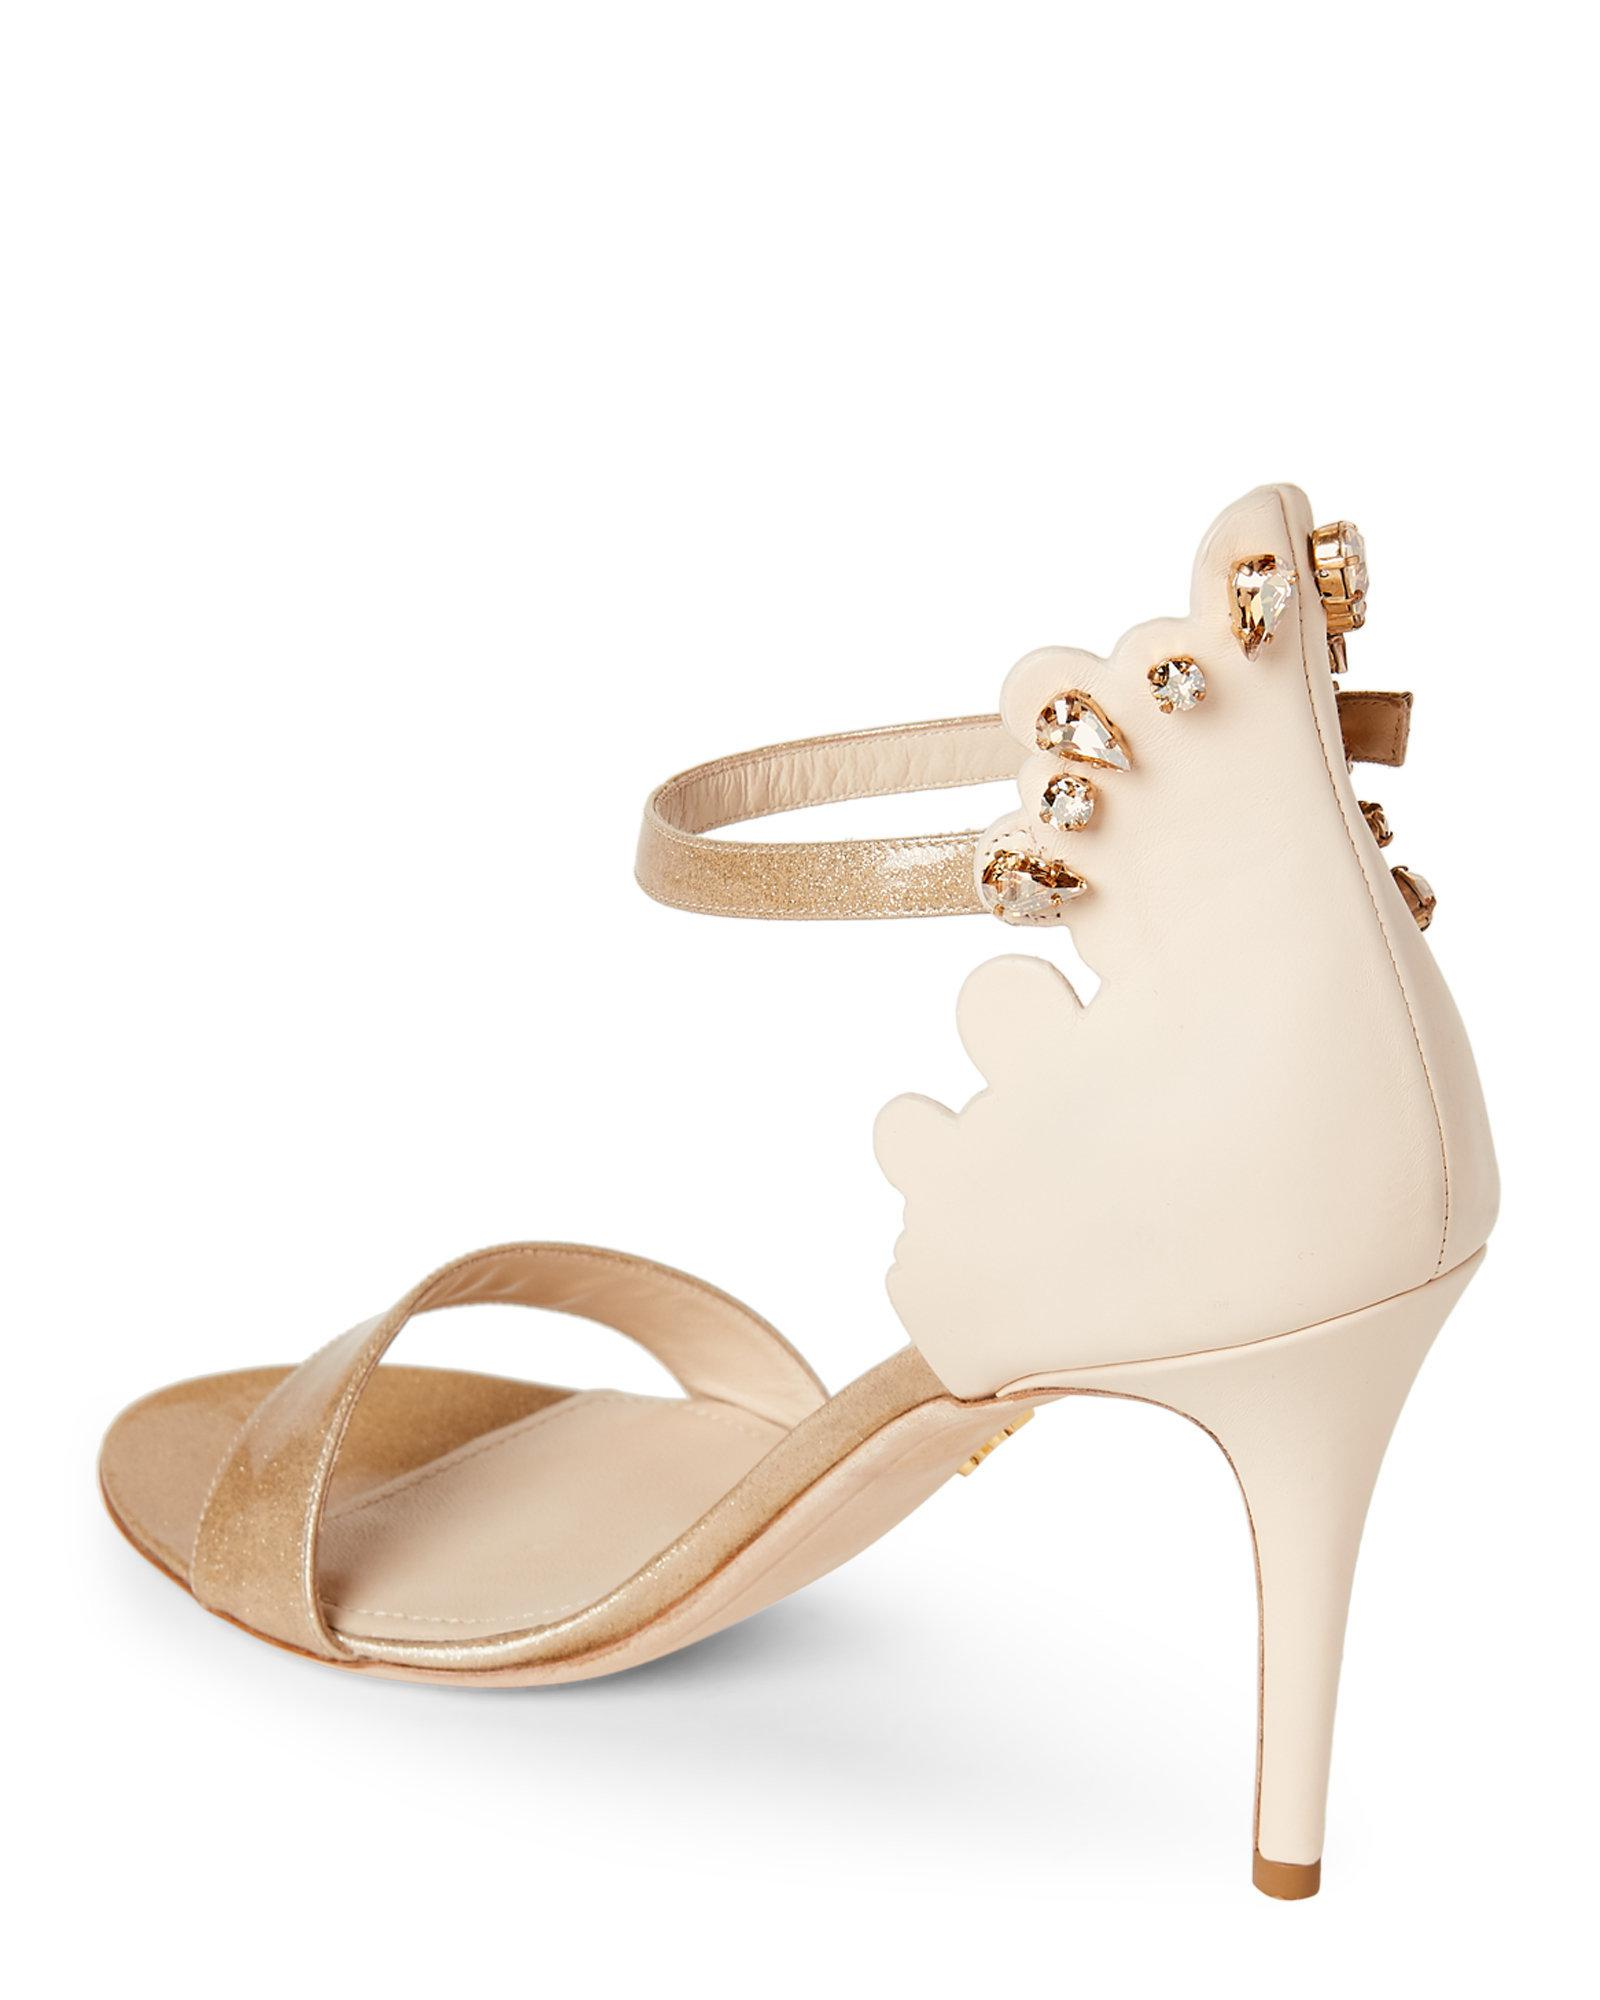 Rodo crystal embellished sandals low shipping cheap price cheap sale latest collections online cheap authentic free shipping under $60 1D42f